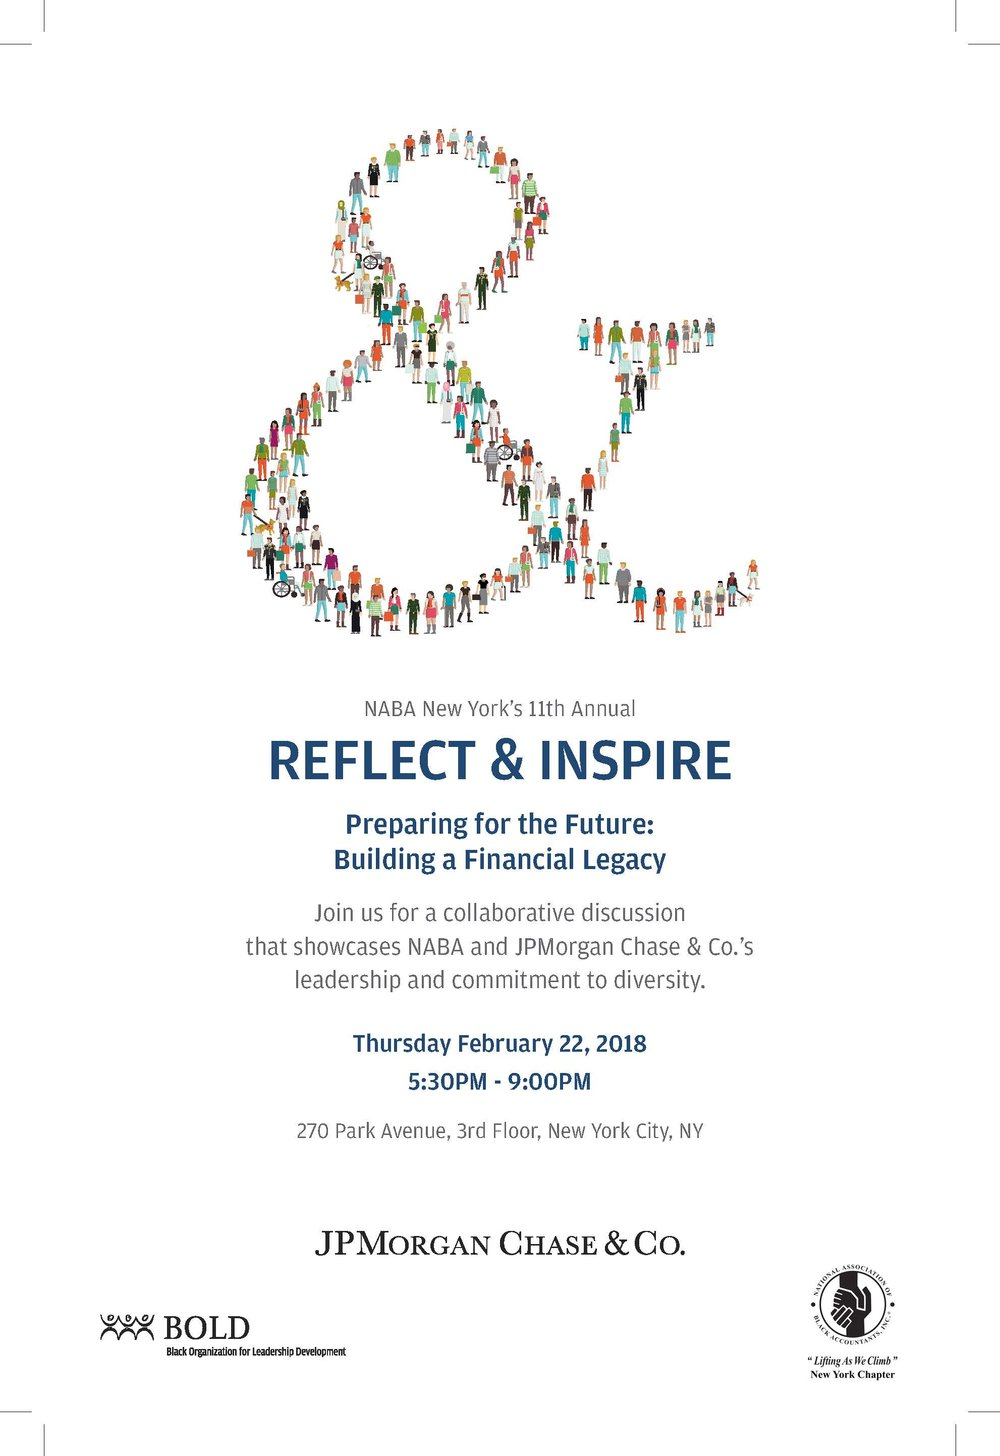 2018 NABA Reflect and Inspire Flyer Final V2.jpg